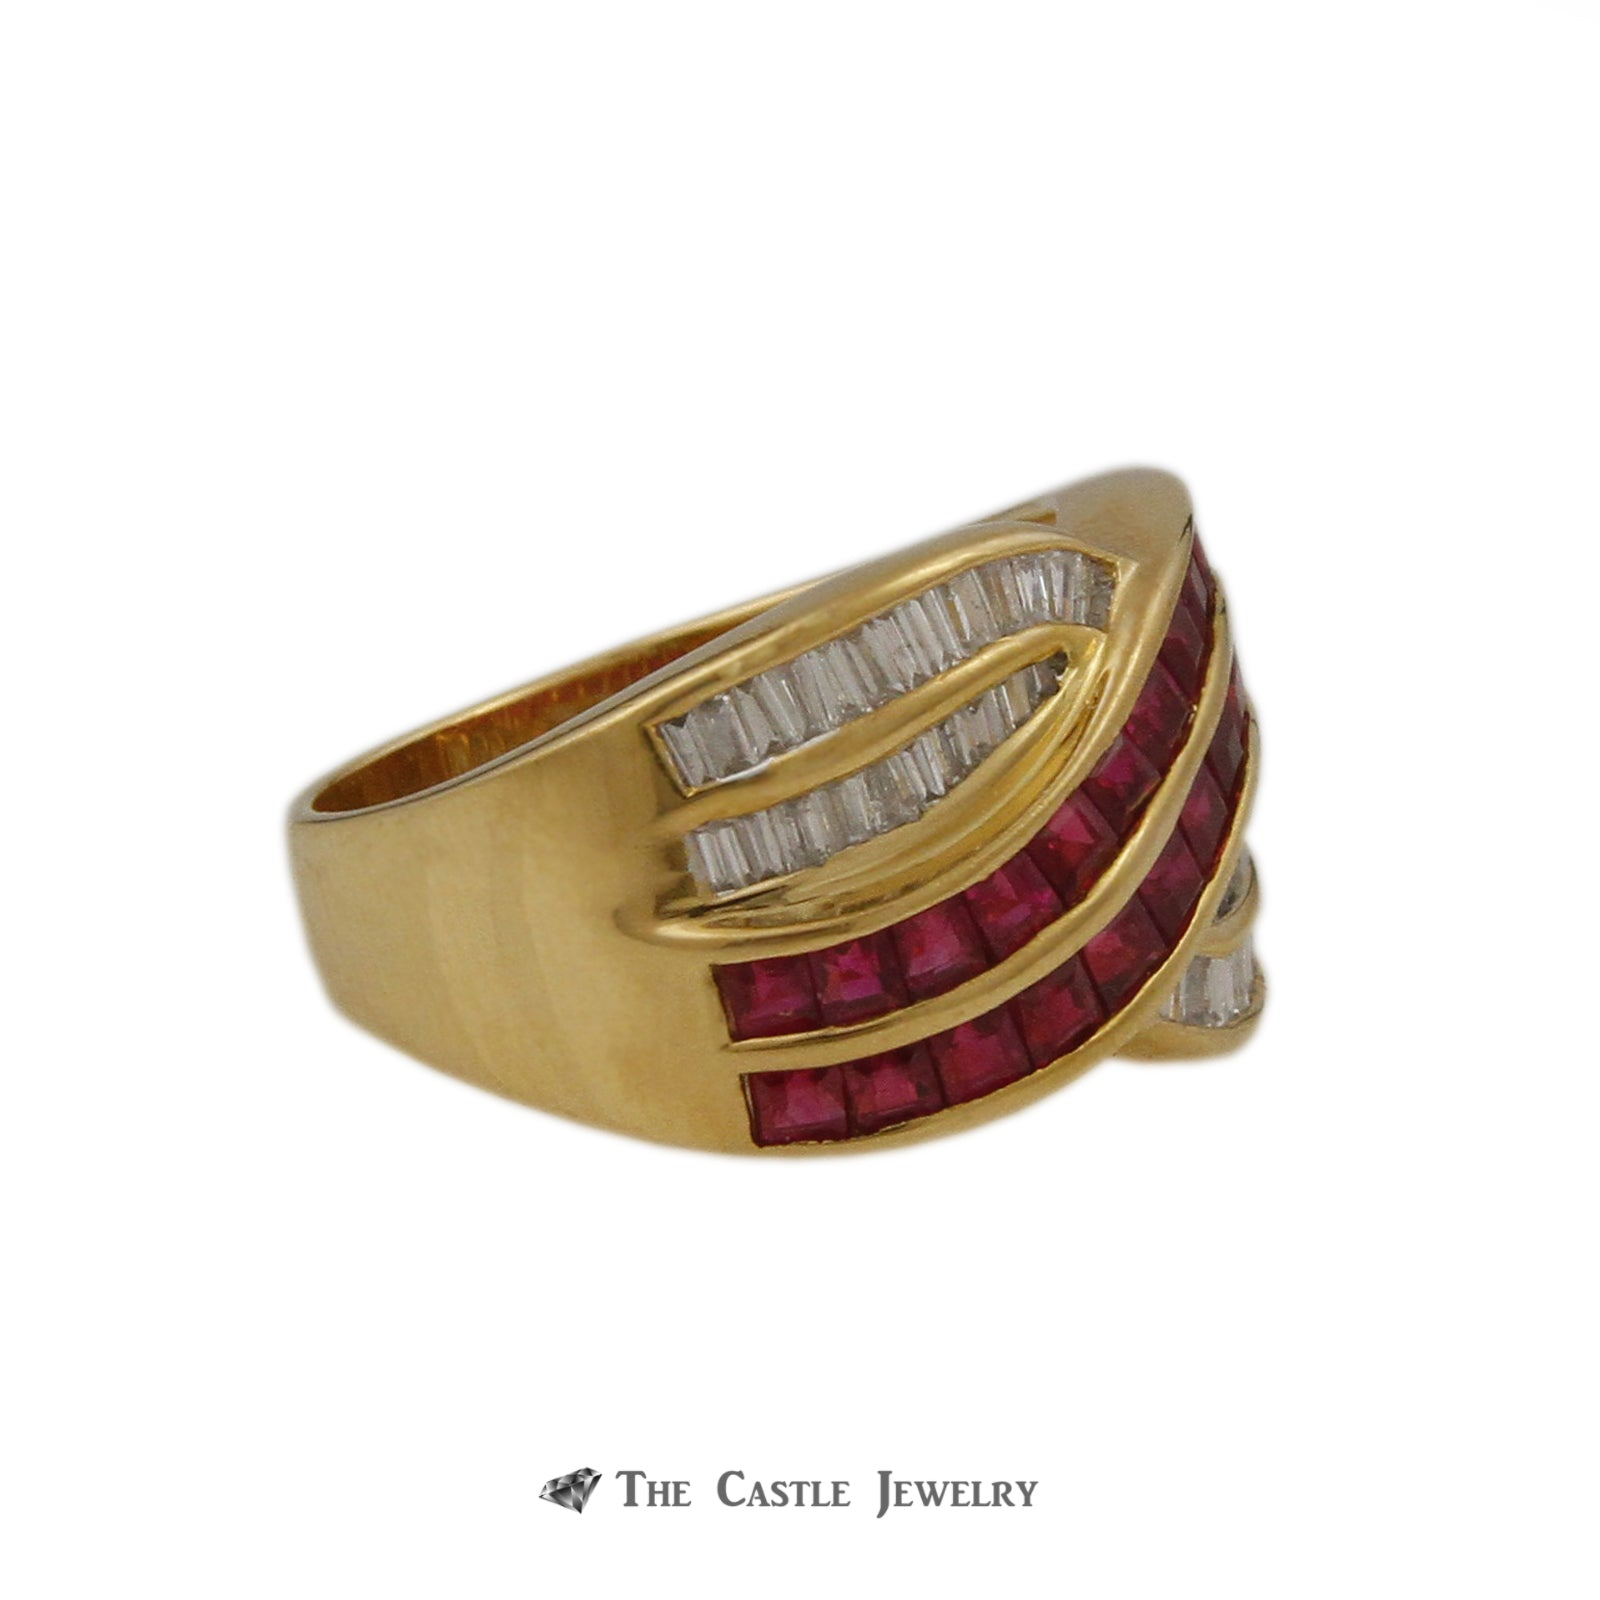 Le Vian Square 1.75cttw Ruby & .50cttw Baguette Diamond Cross Over Style Ring in 18k Yellow Gold-2